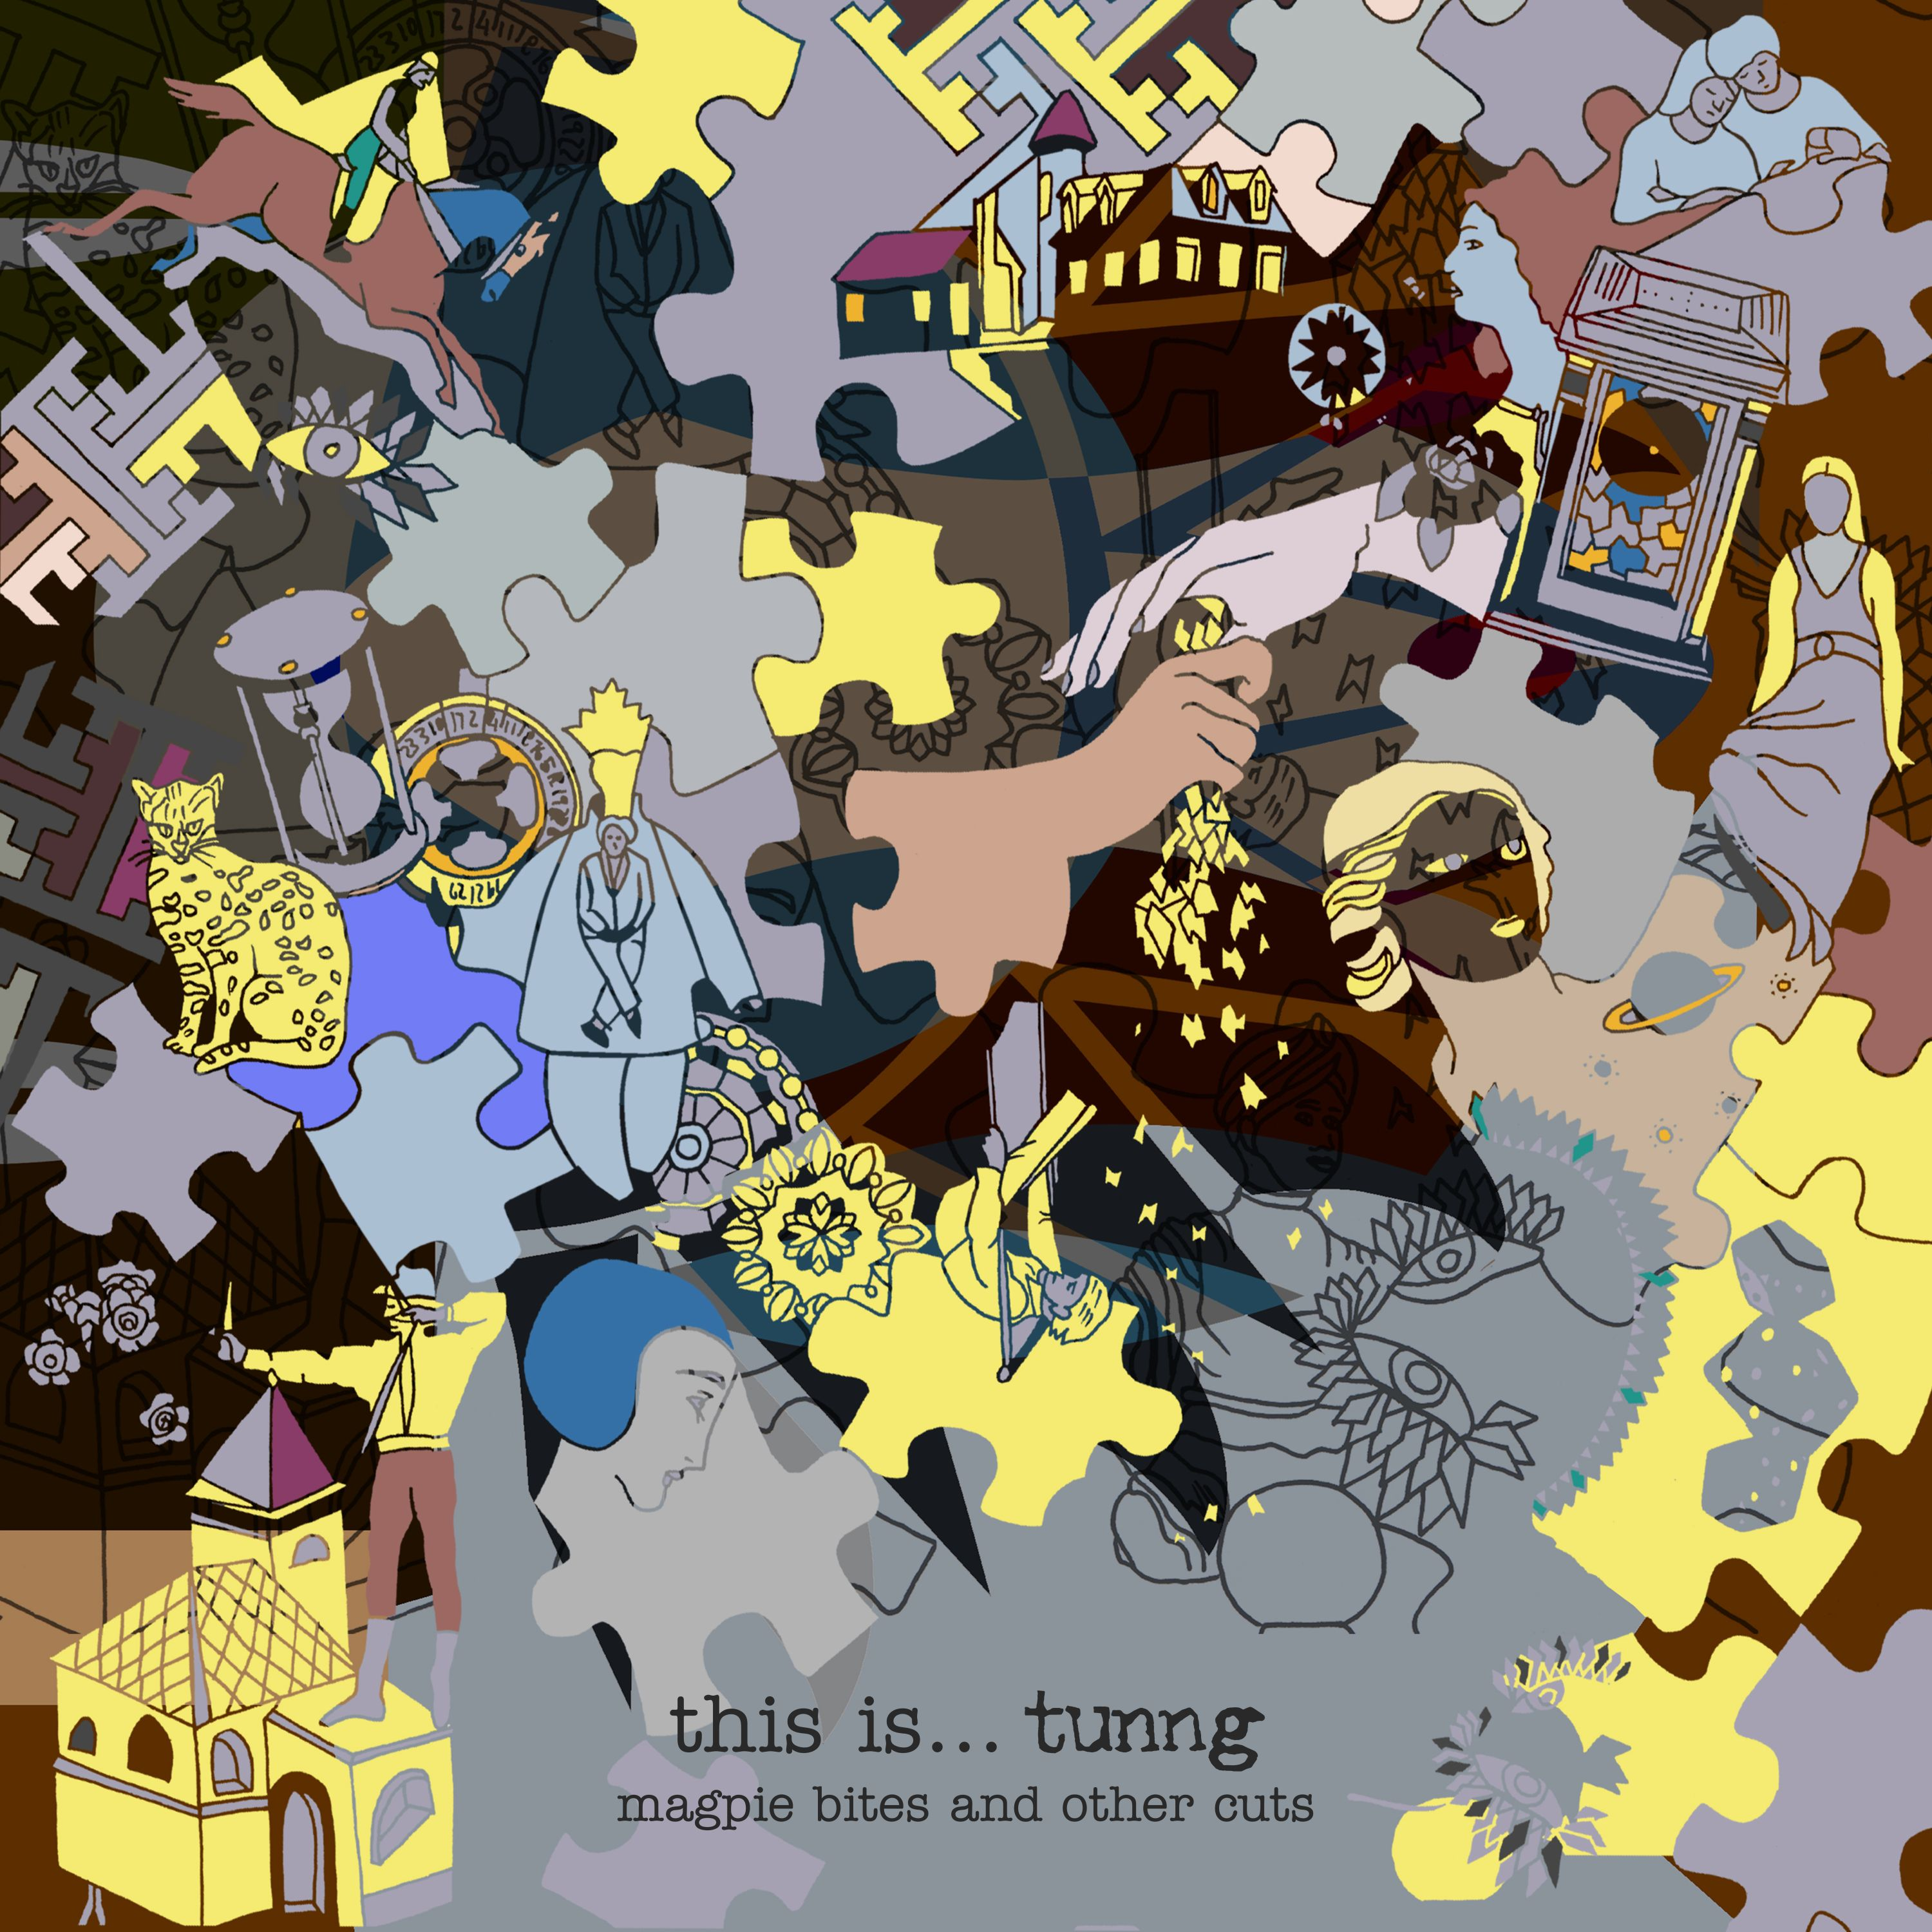 this is tunng...magpie bites and other cuts (DL Album) - Tunng